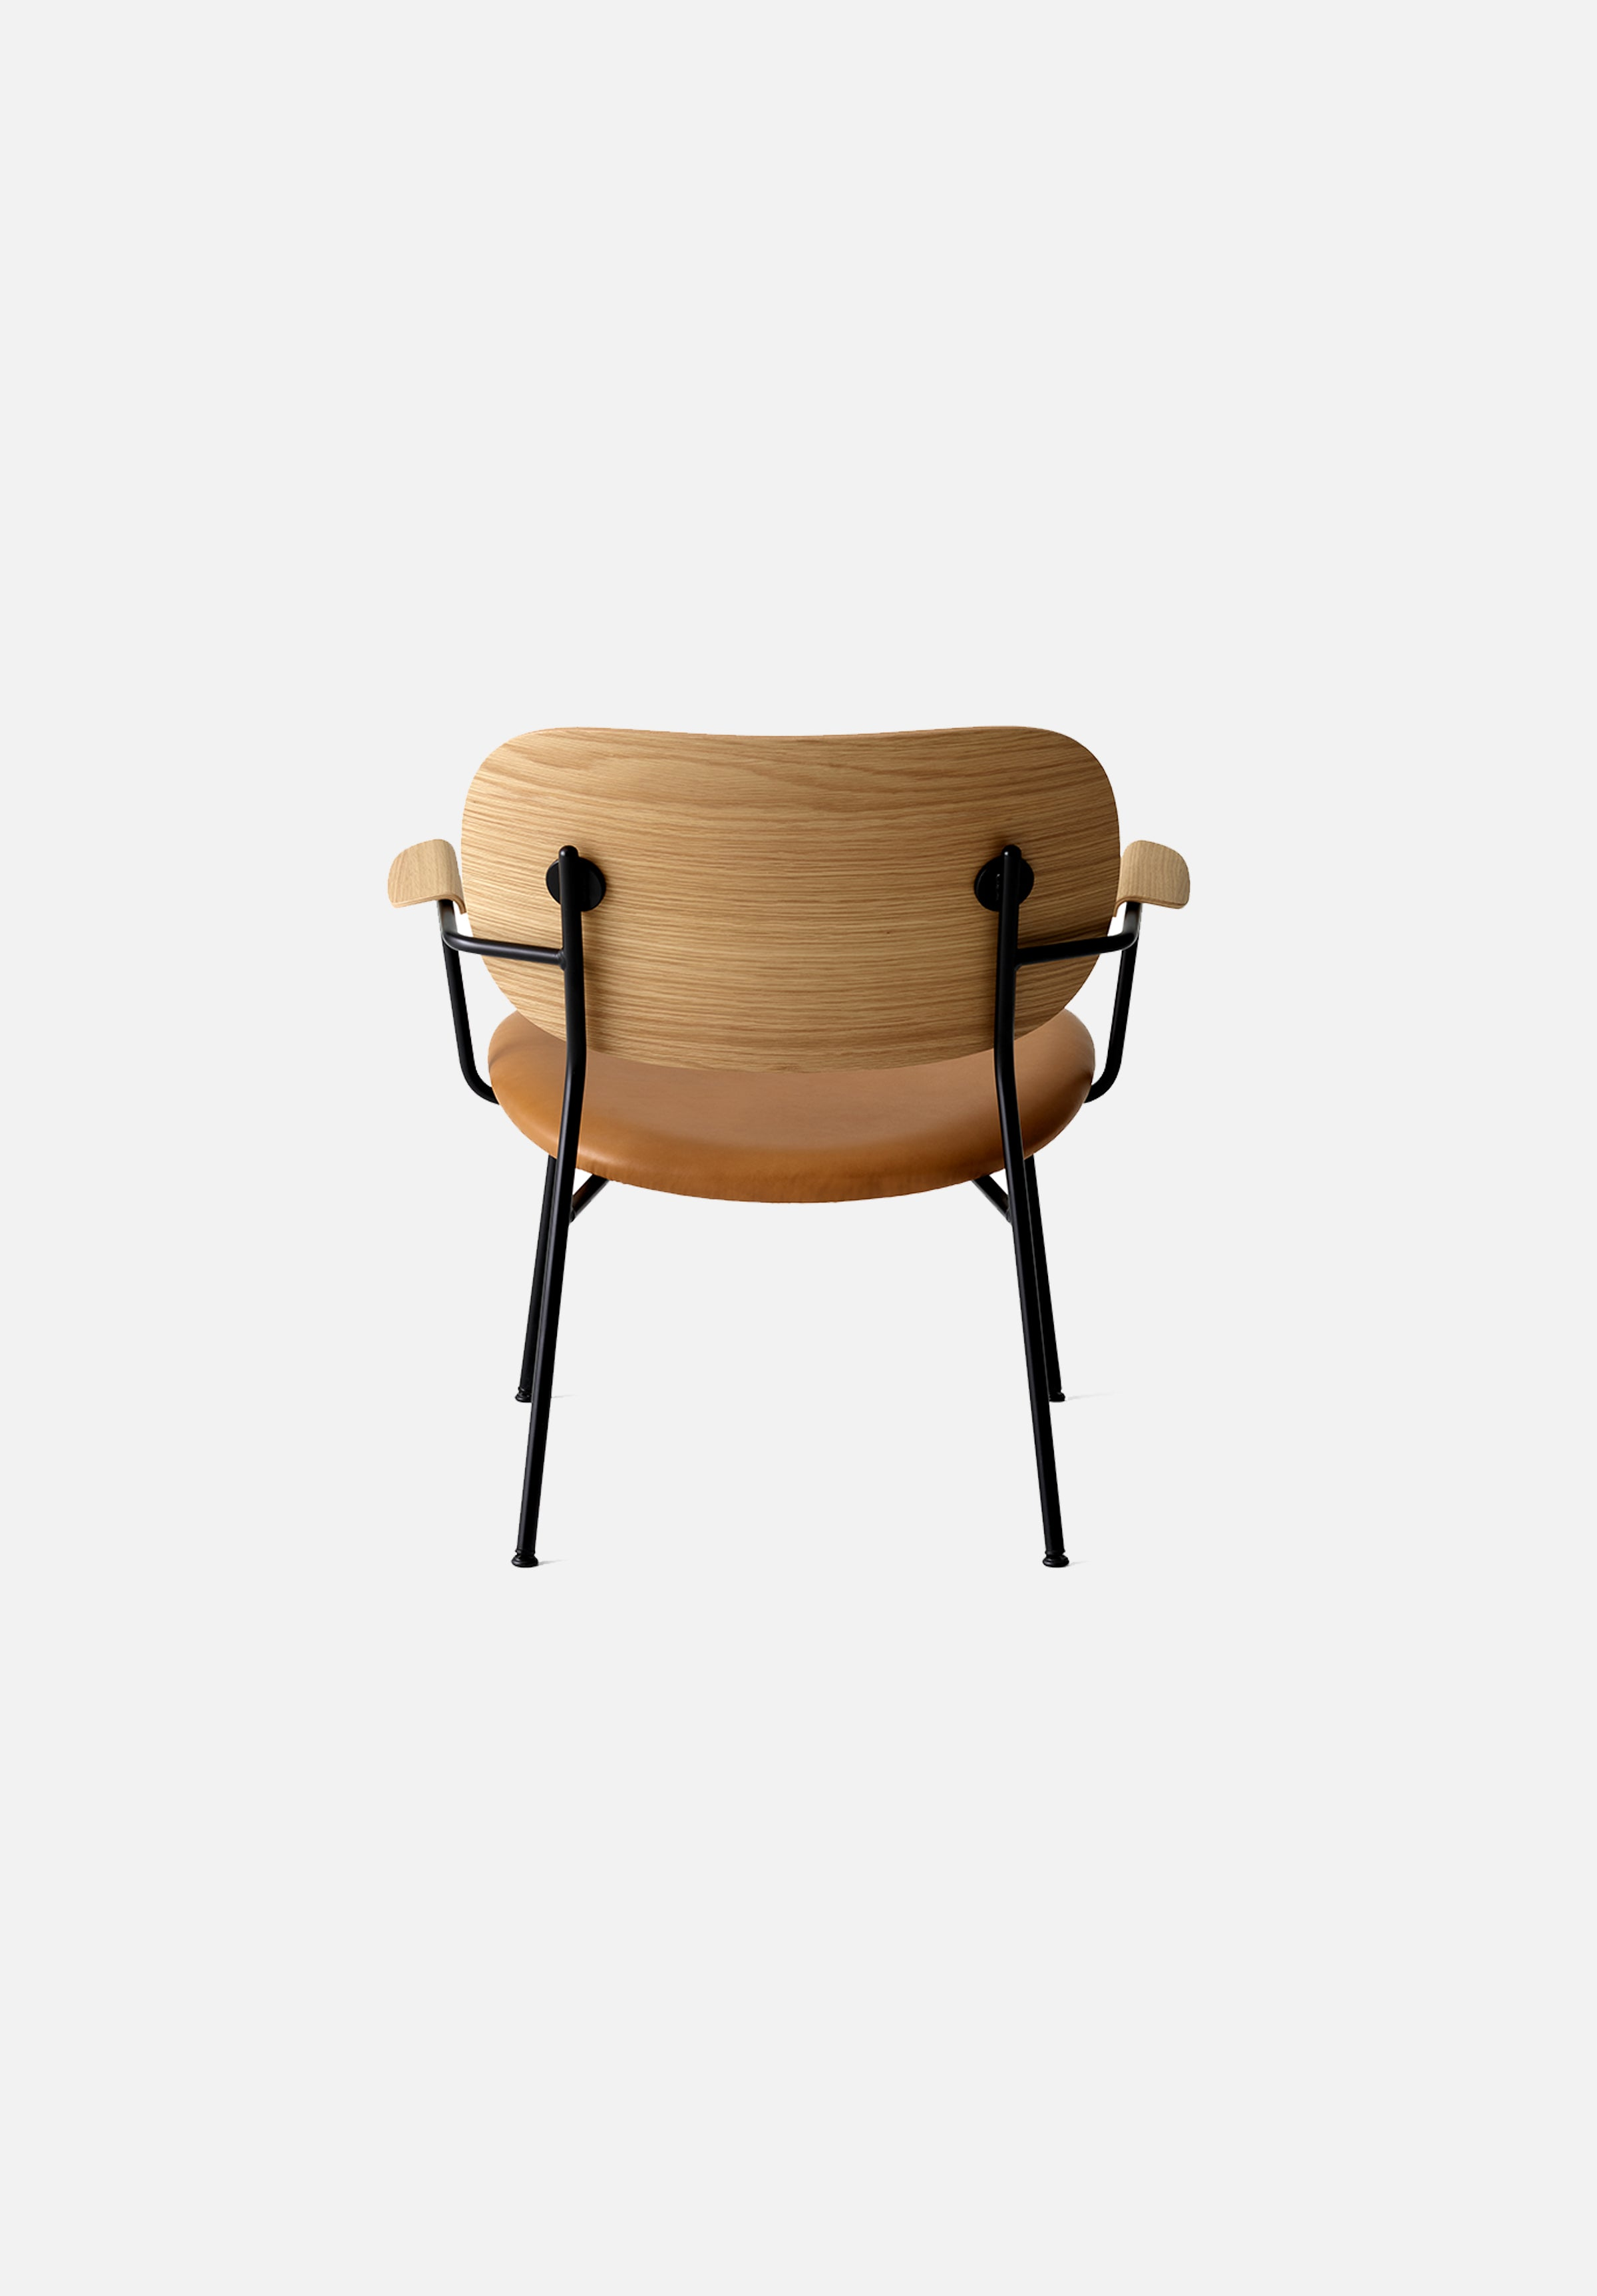 Co-Chair — Lounge-Norm Architects-Menu-Natural Oak Base / Cognac Leather-Average